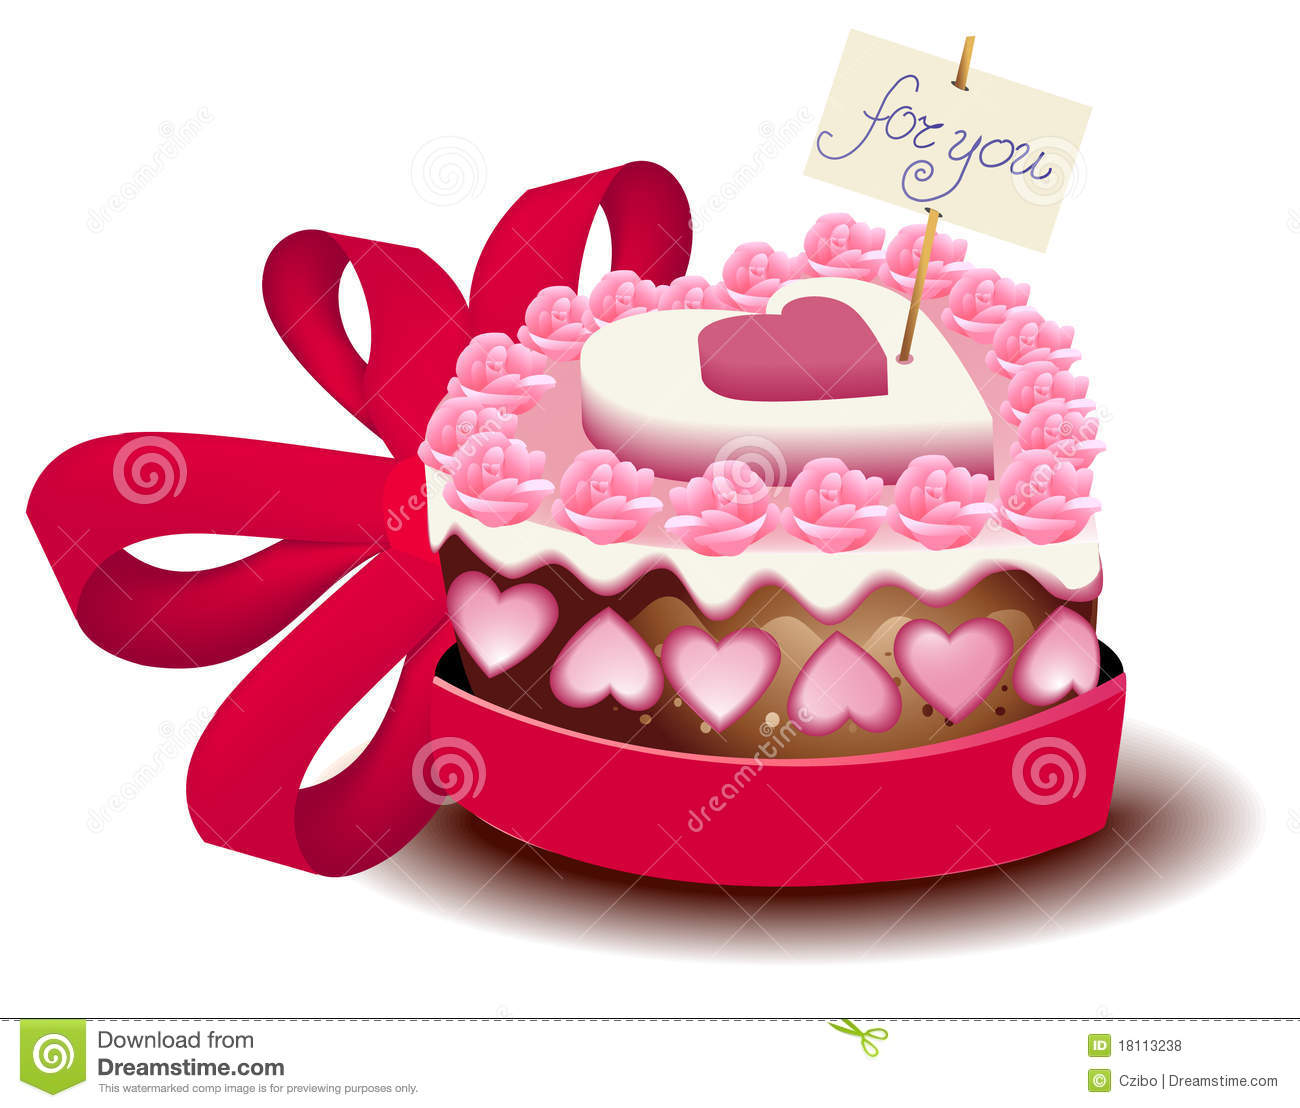 Valentine Cake Clip Art : Valentine s cake stock vector. Image of cake, light ...